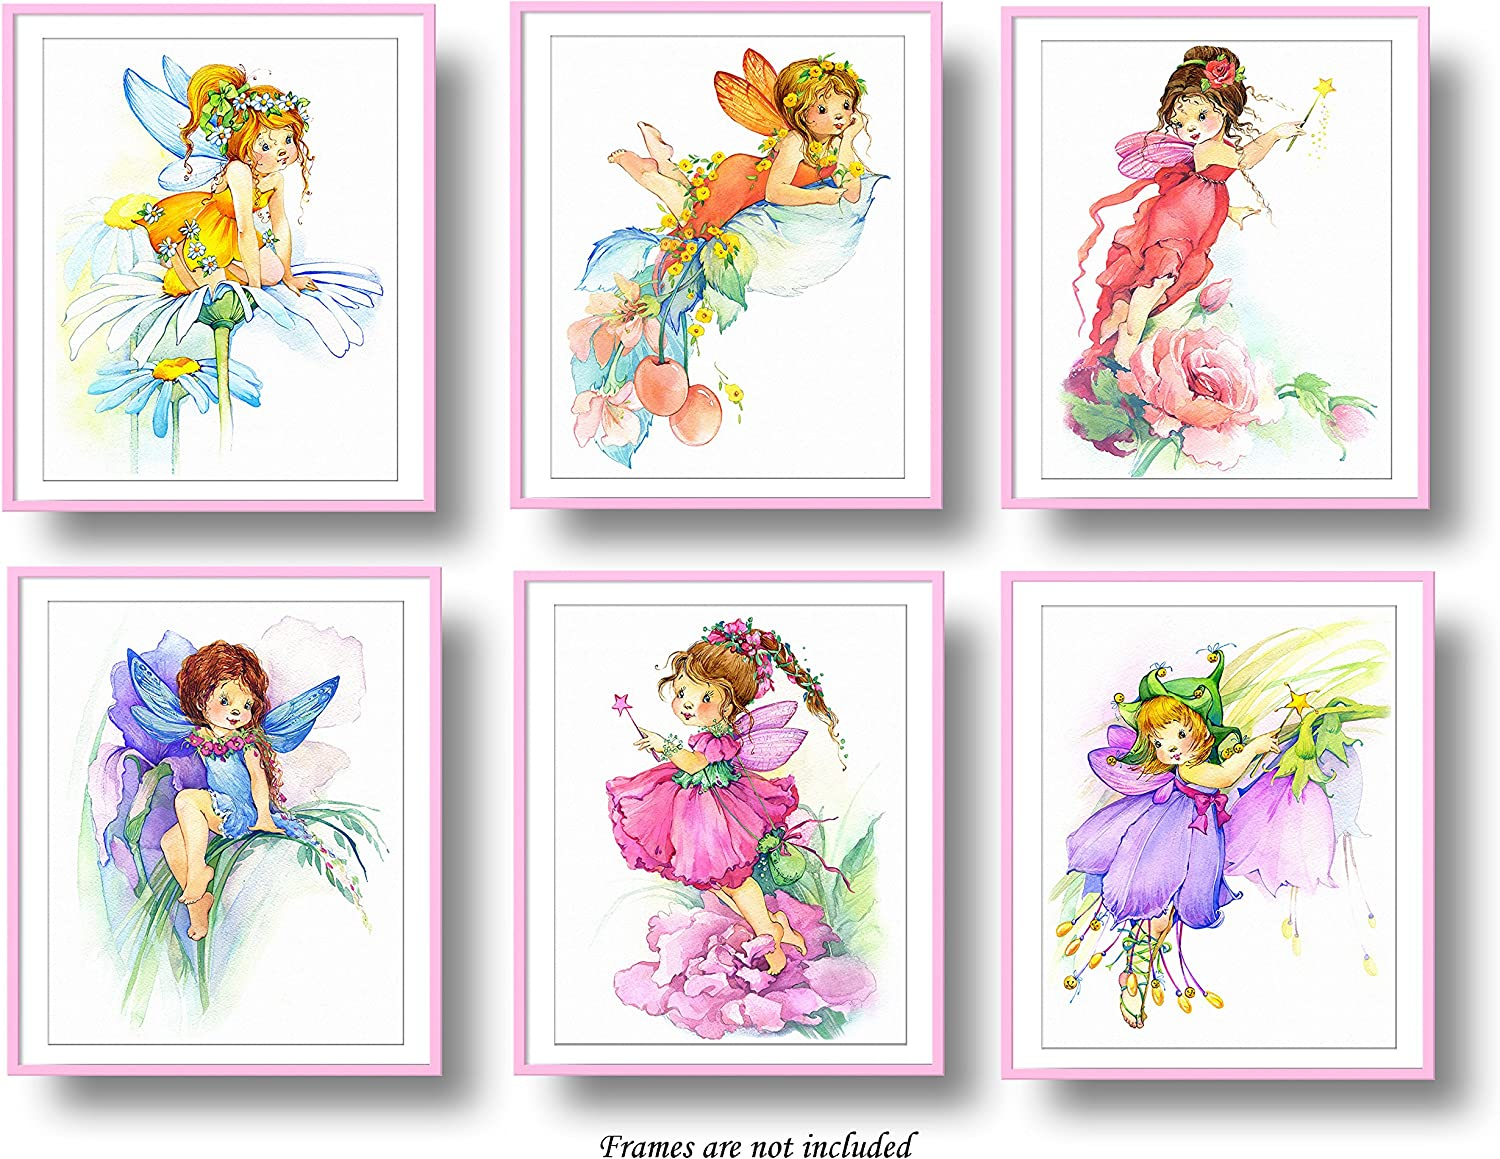 "7Dots Art. Flower Fairy. Watercolor Art Print, Poster 8""x10"" on Fine Art Thick Watercolor Paper for Childrens Kids Room, Bedroom, Bathroom. Wall Art Decor with Fairies for Boys, Girls. (Set of 6)"